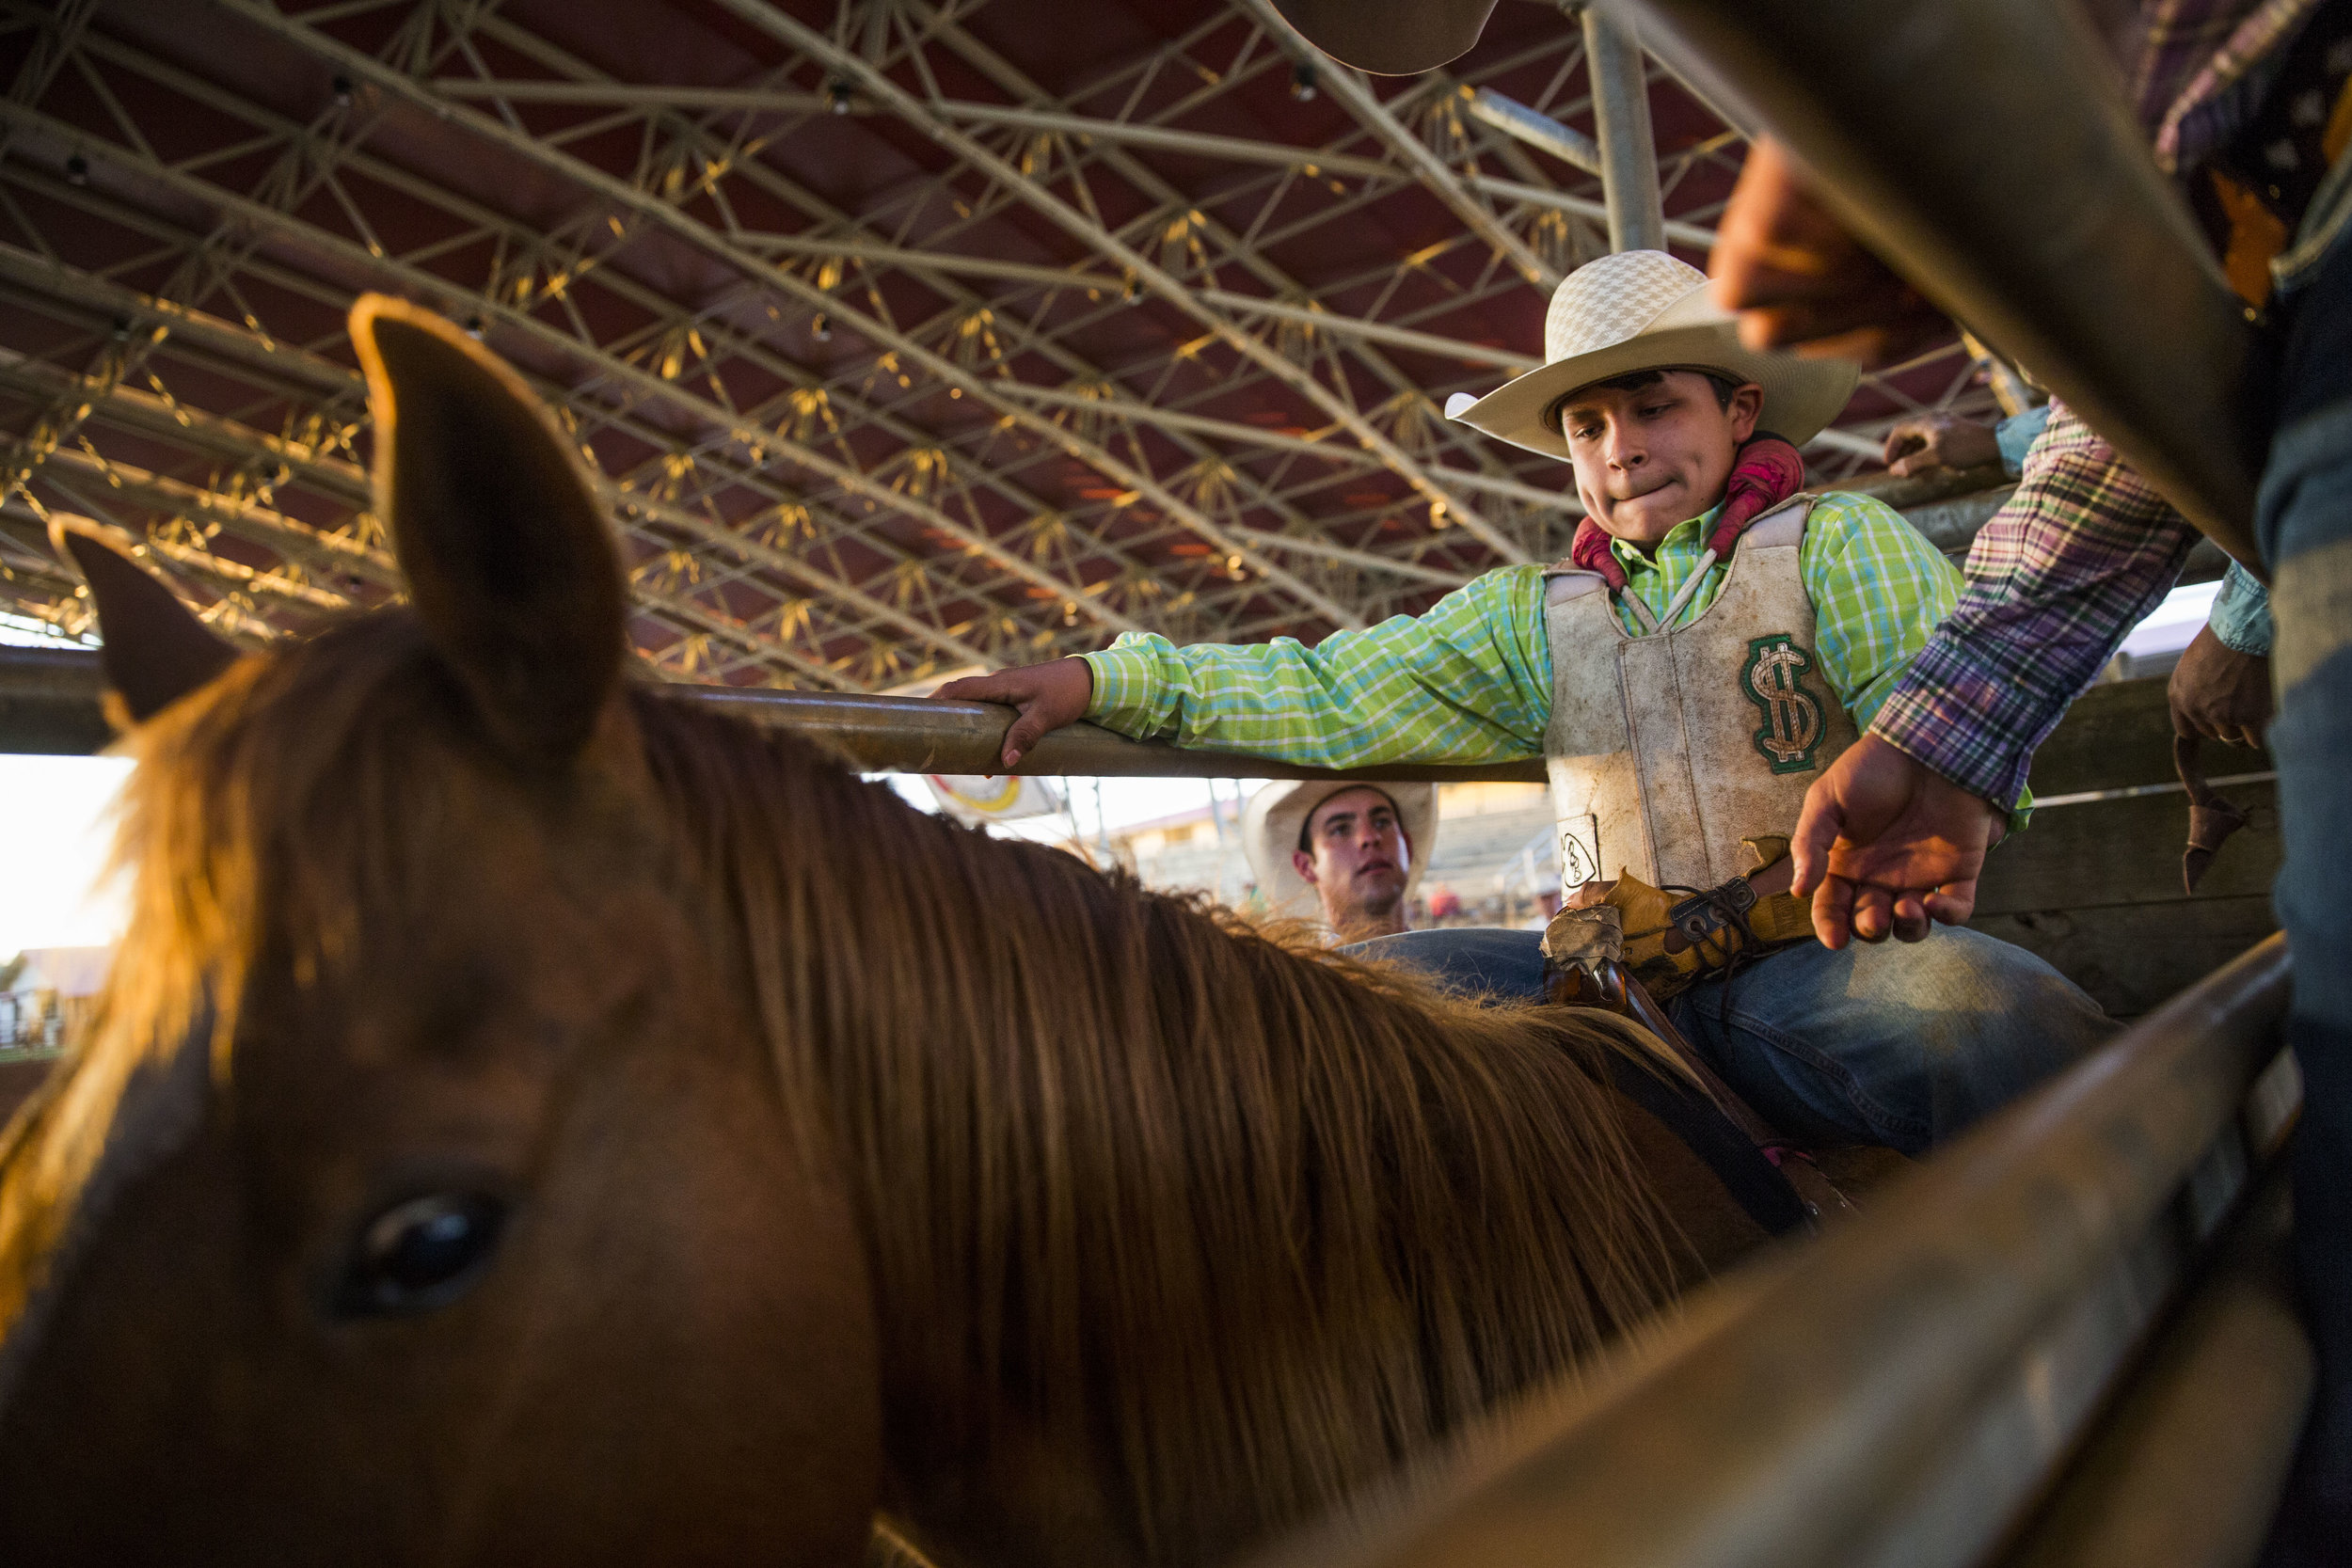 Chunky Osceola waits for the pen gate to open during the Junior Cypress Memorial Rodeo at the Junior Cypress Rodeo Arena in Clewiston, Fla. on Saturday, March 17, 2018.